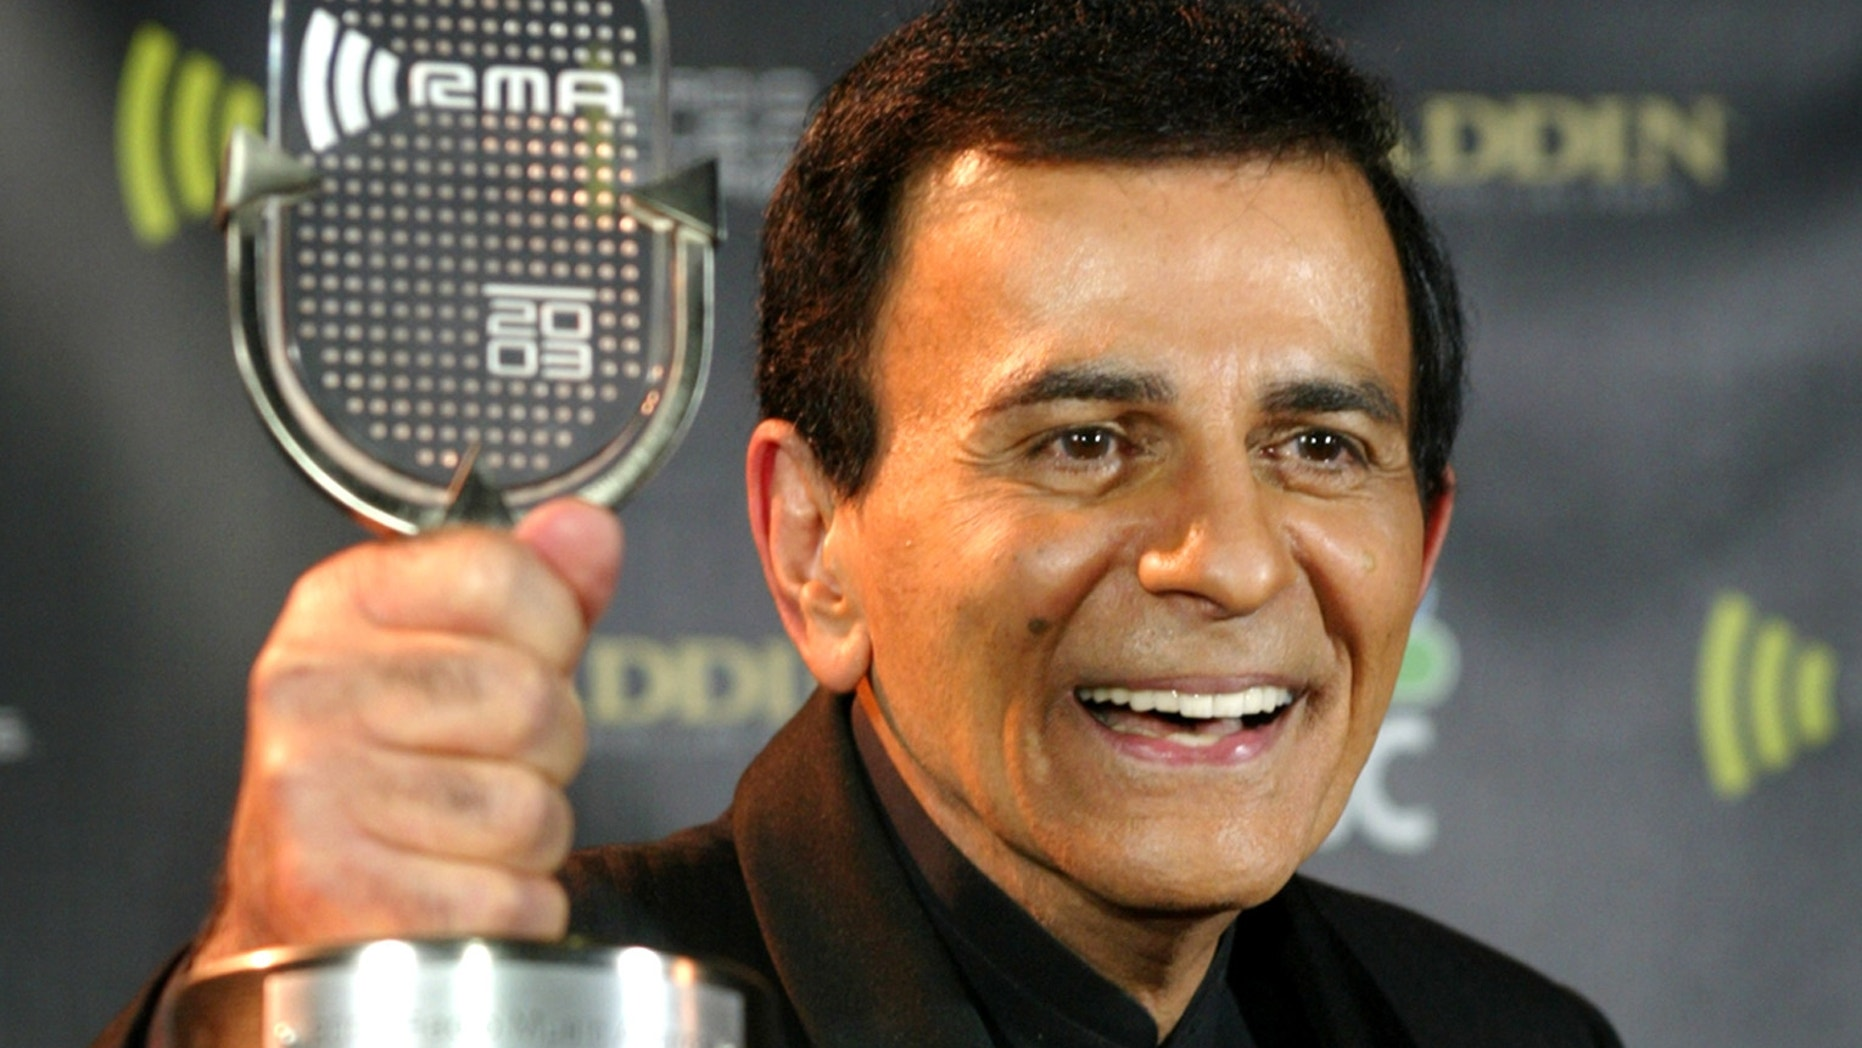 Casey Kasem poses with his Radio Icon Award at the 2003 Radio Music Awards, at the Aladdin Theatre for the Performing Arts in Las Vegas, Nevada, October 27, 2003.